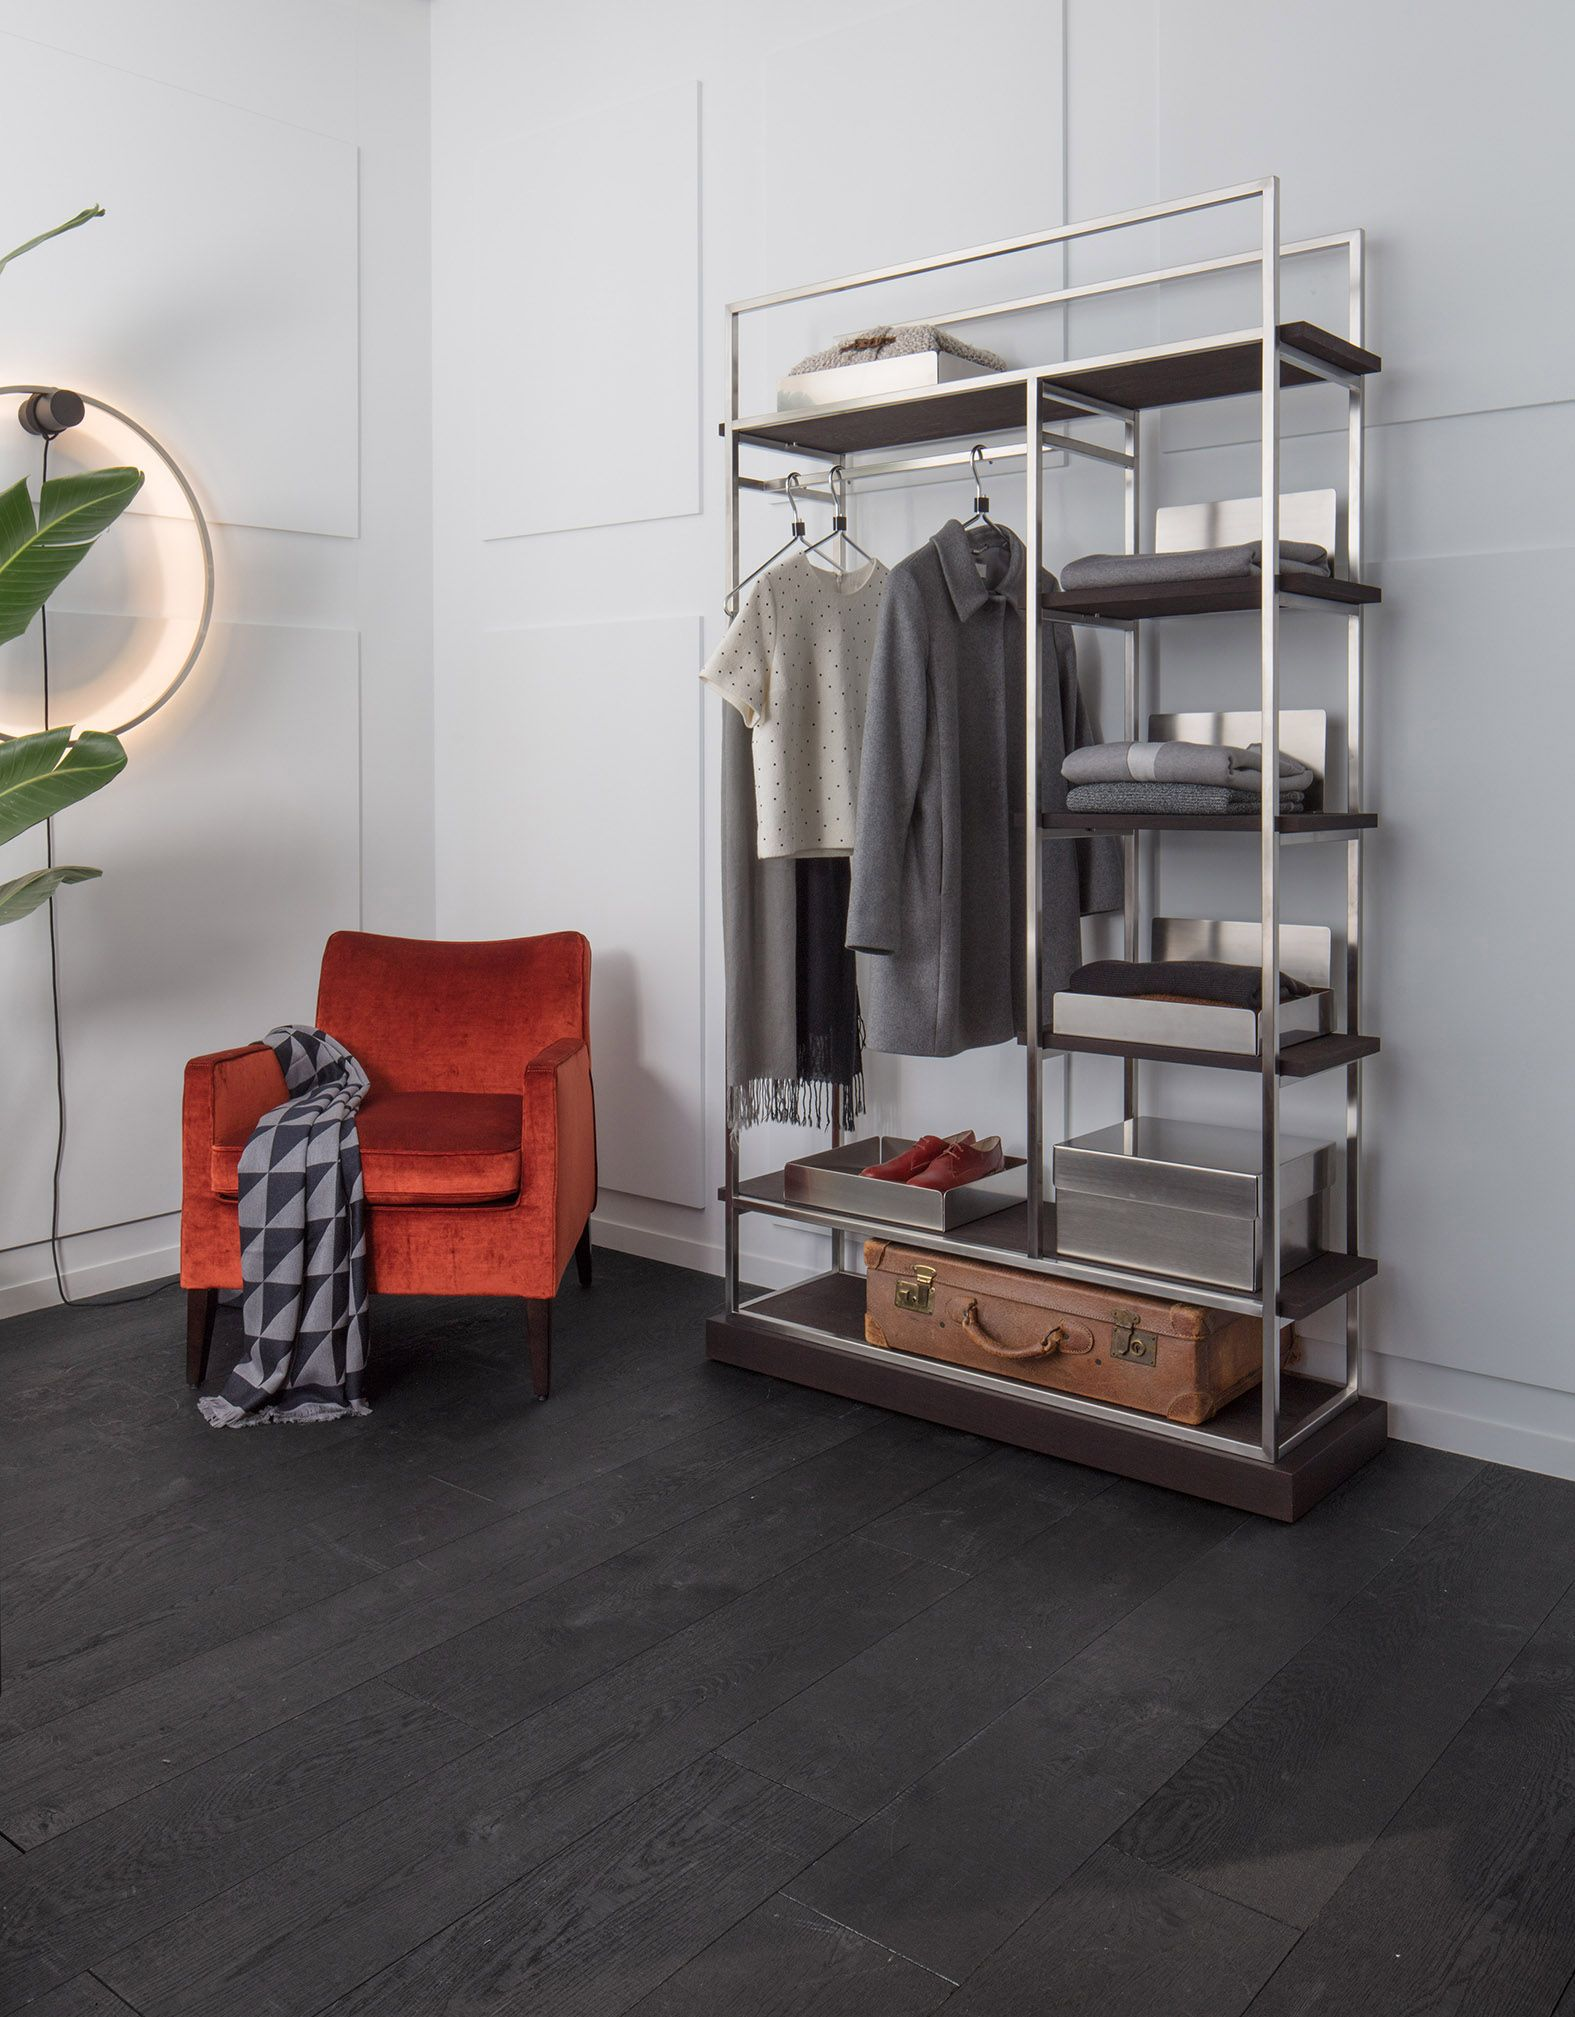 bronxx regal garderobe in edelstahl mit b den in holz wenge pandora sessel by christine kr ncke. Black Bedroom Furniture Sets. Home Design Ideas